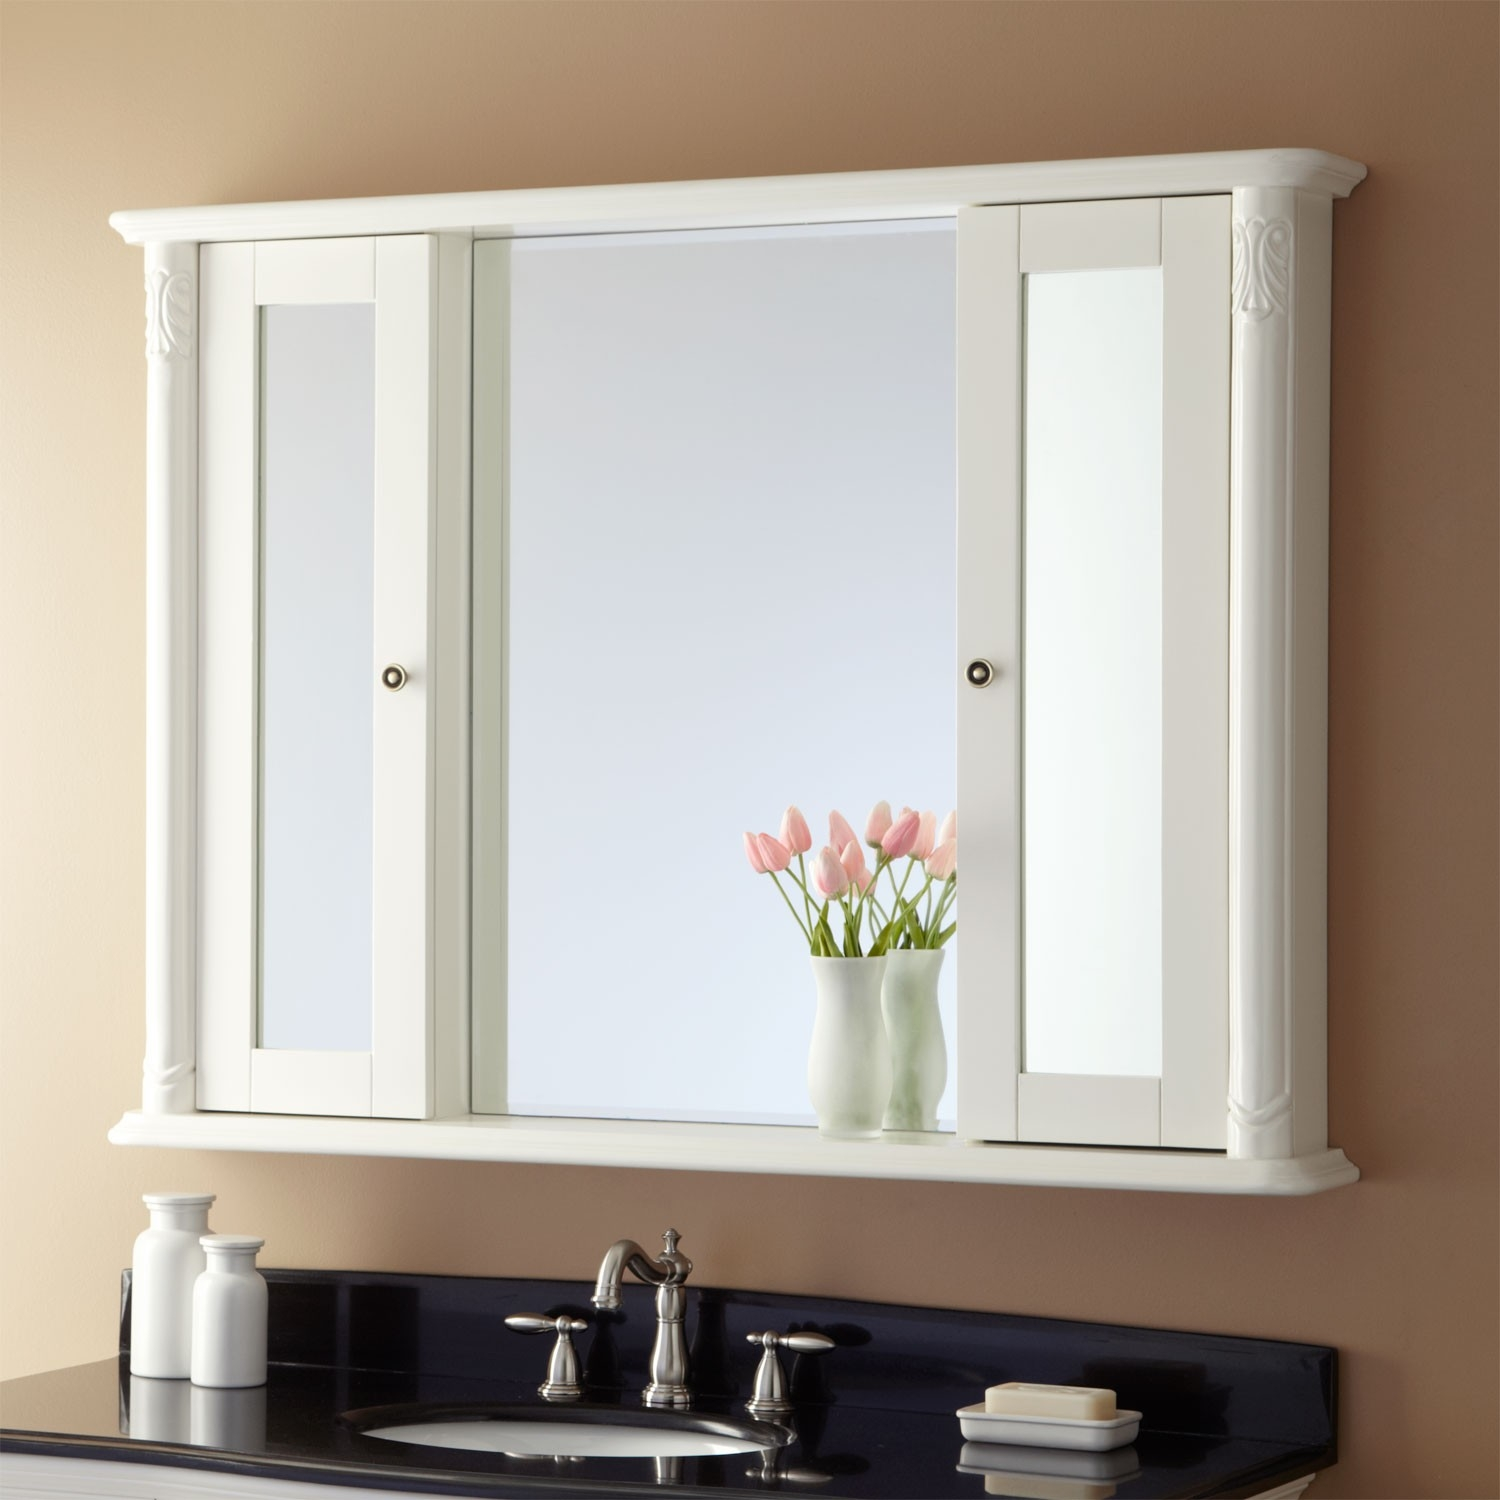 Mirrored Bathroom Cabinet With Shelflocked bathroom cabinets inspirative cabinet decoration